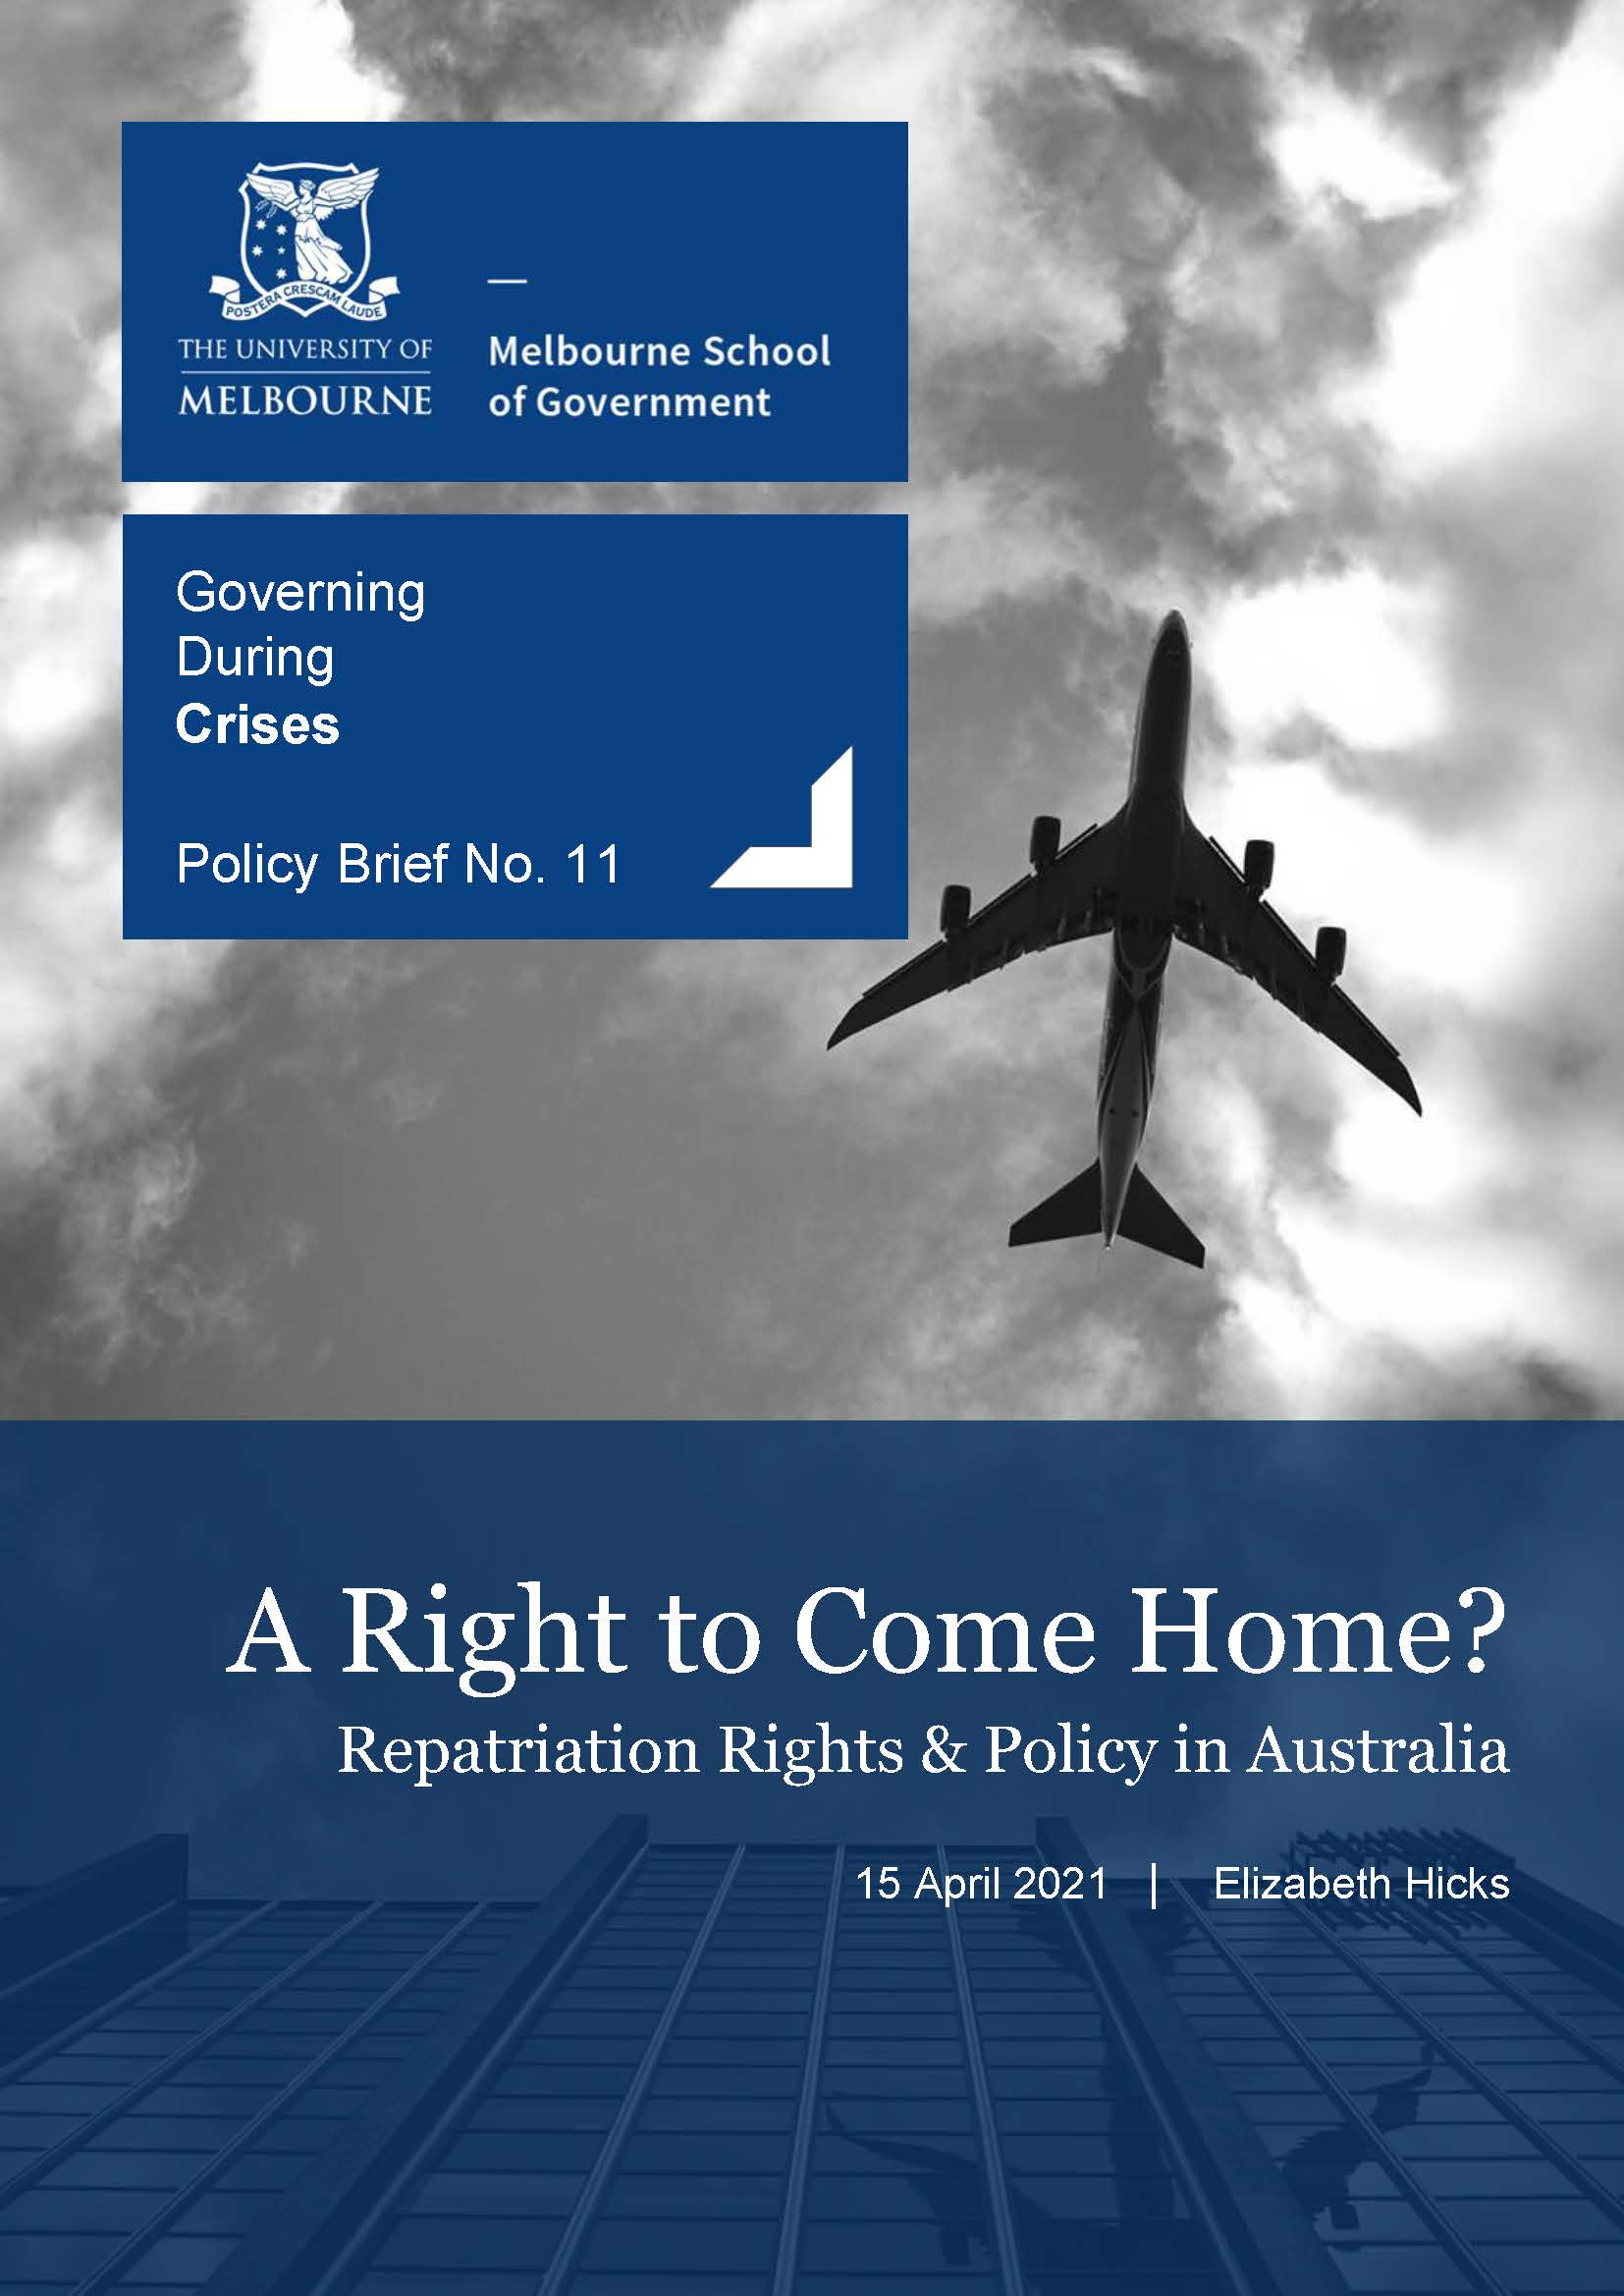 GDC+Policy+Brief+11_Right+to+Come+Home_[final cover] 1.jpg